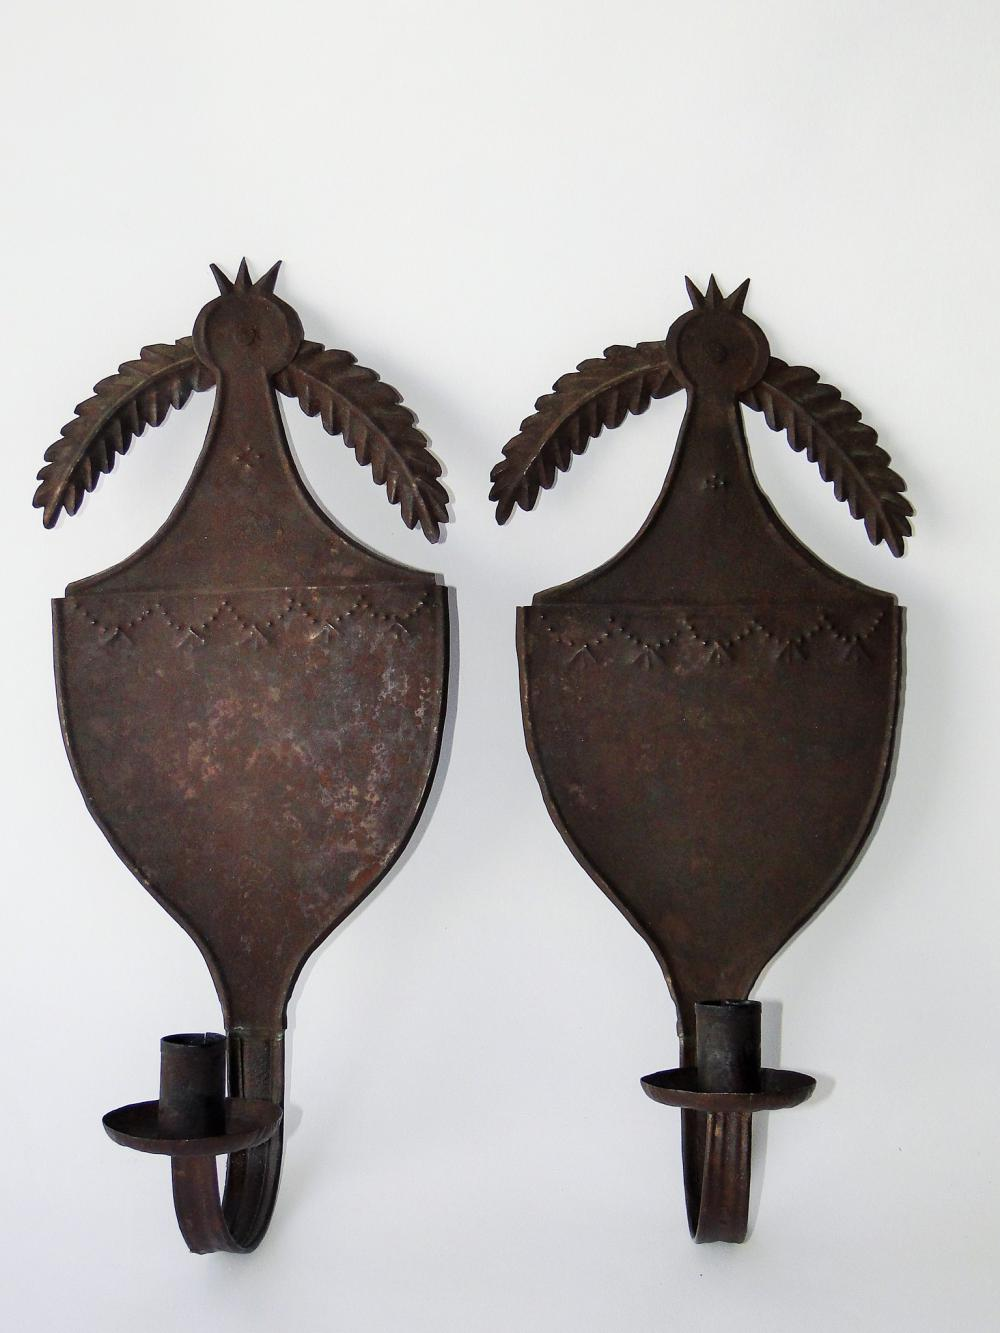 EARLY 19TH C CANDLE SCONCES